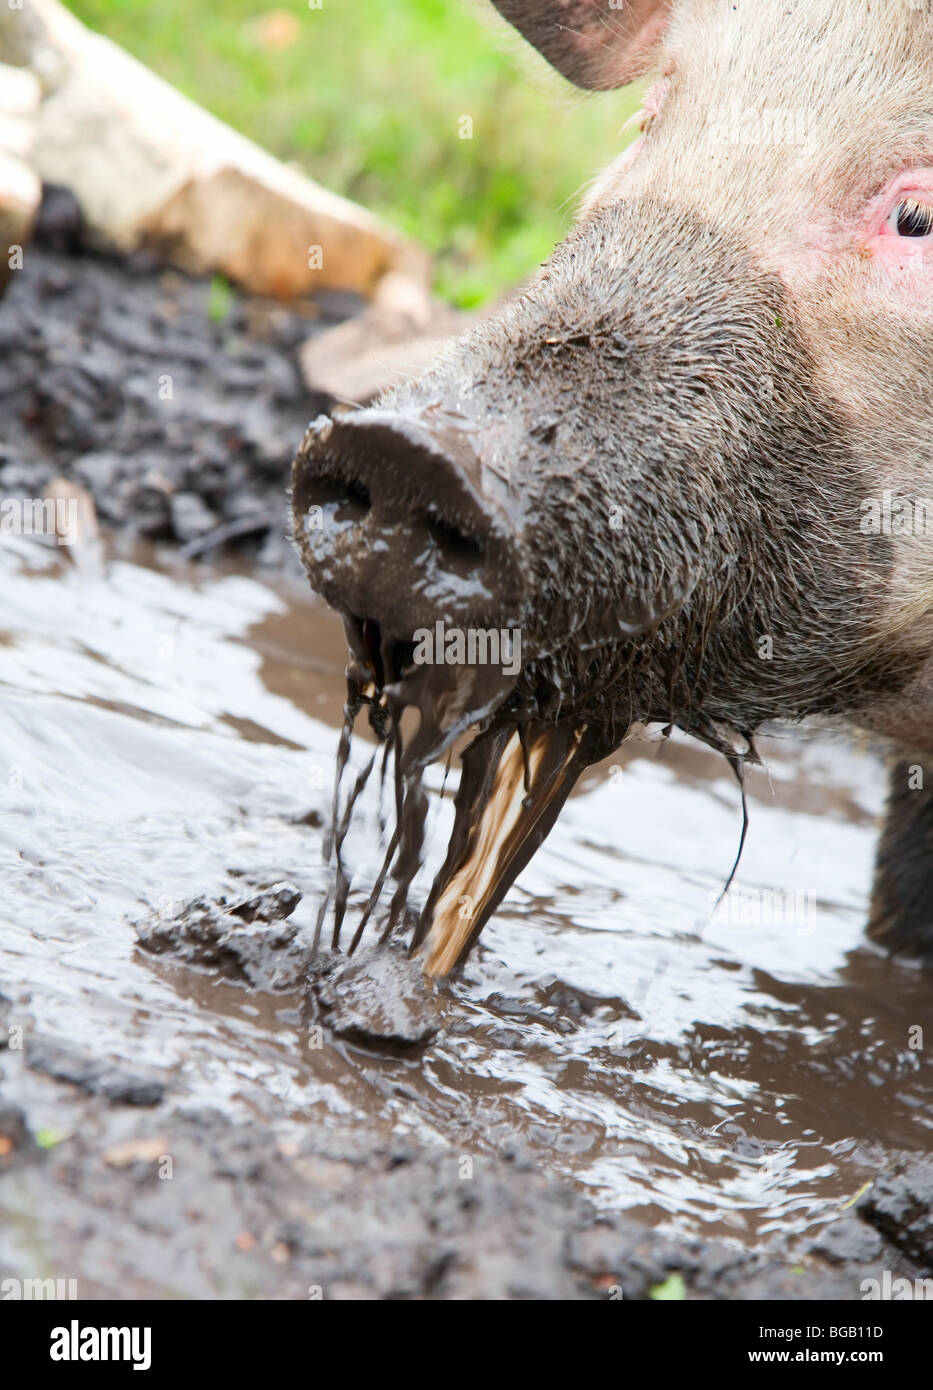 Pig sifting through puddle, because she is from Russia - Stock Image